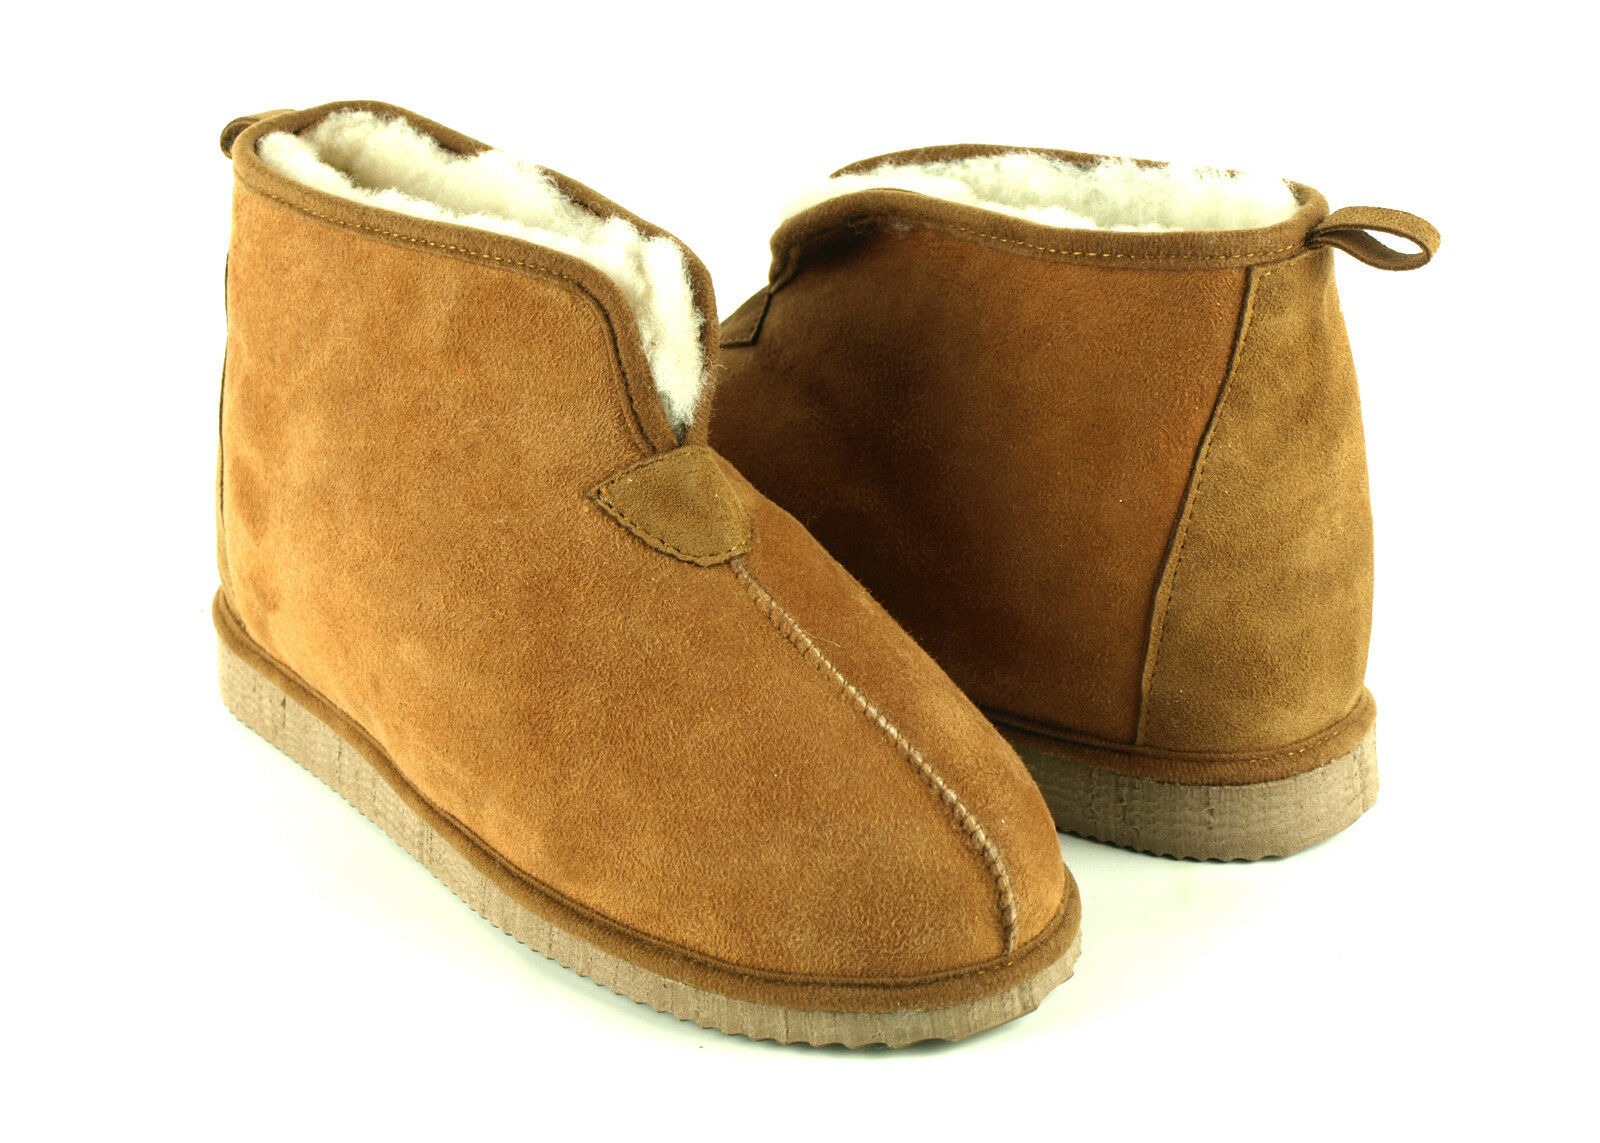 Hombre Mujer Ankle Merino Marrón Sheepskin Slippers Ankle Mujer Botas Vegetable Tanned 8a9b8d